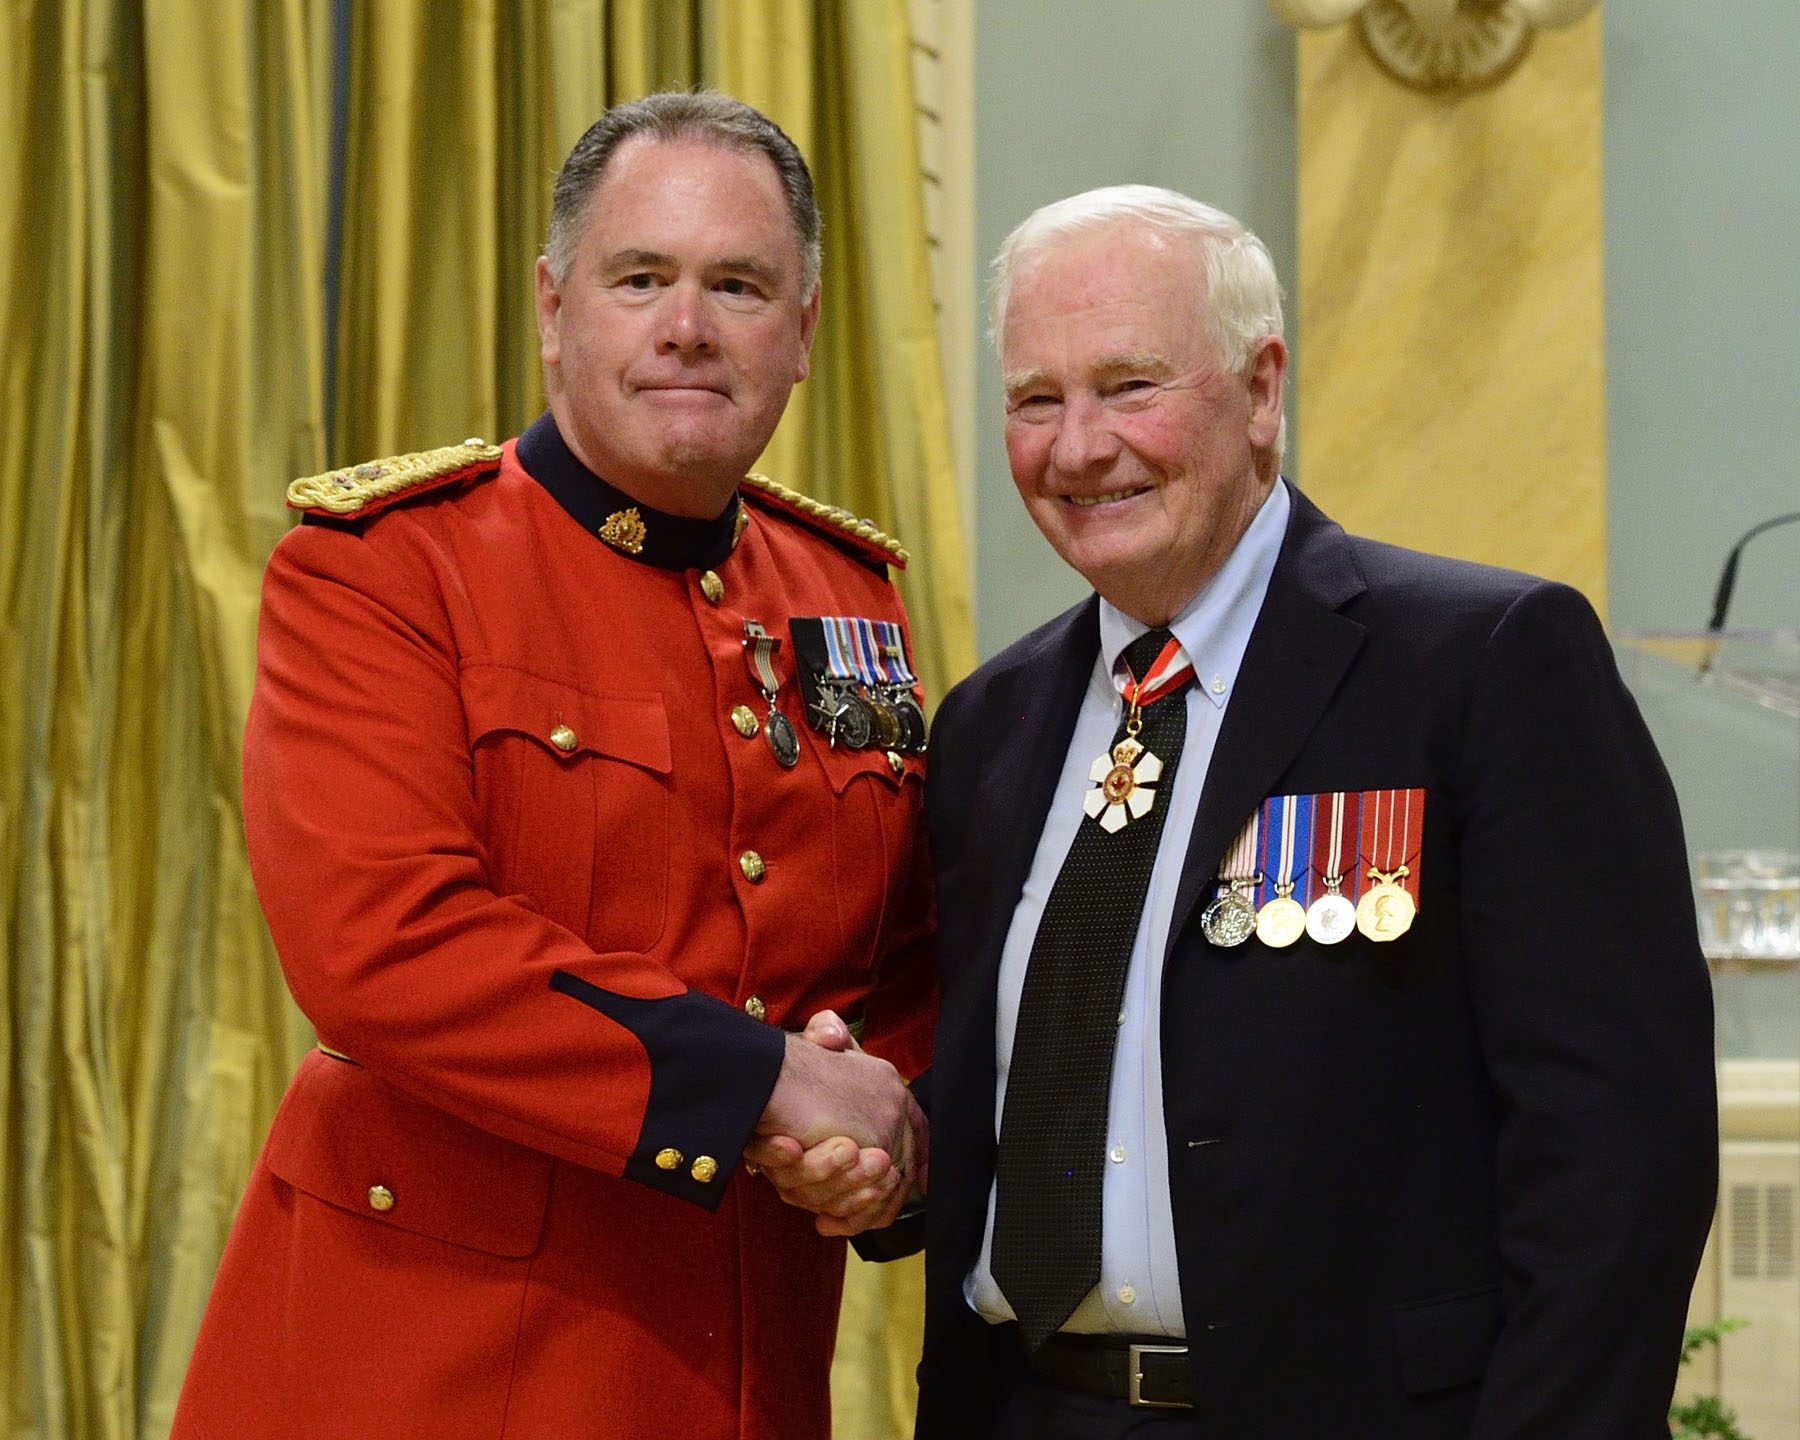 Although Joseph Healy has been involved in several community organizations and activities for many years, one of his greatest achievements is the creation and administration of the National RCMP Graves Inspection and Maintenance Information Website. His dedication to this initiative continues to bring honour to the RCMP and to Canada.